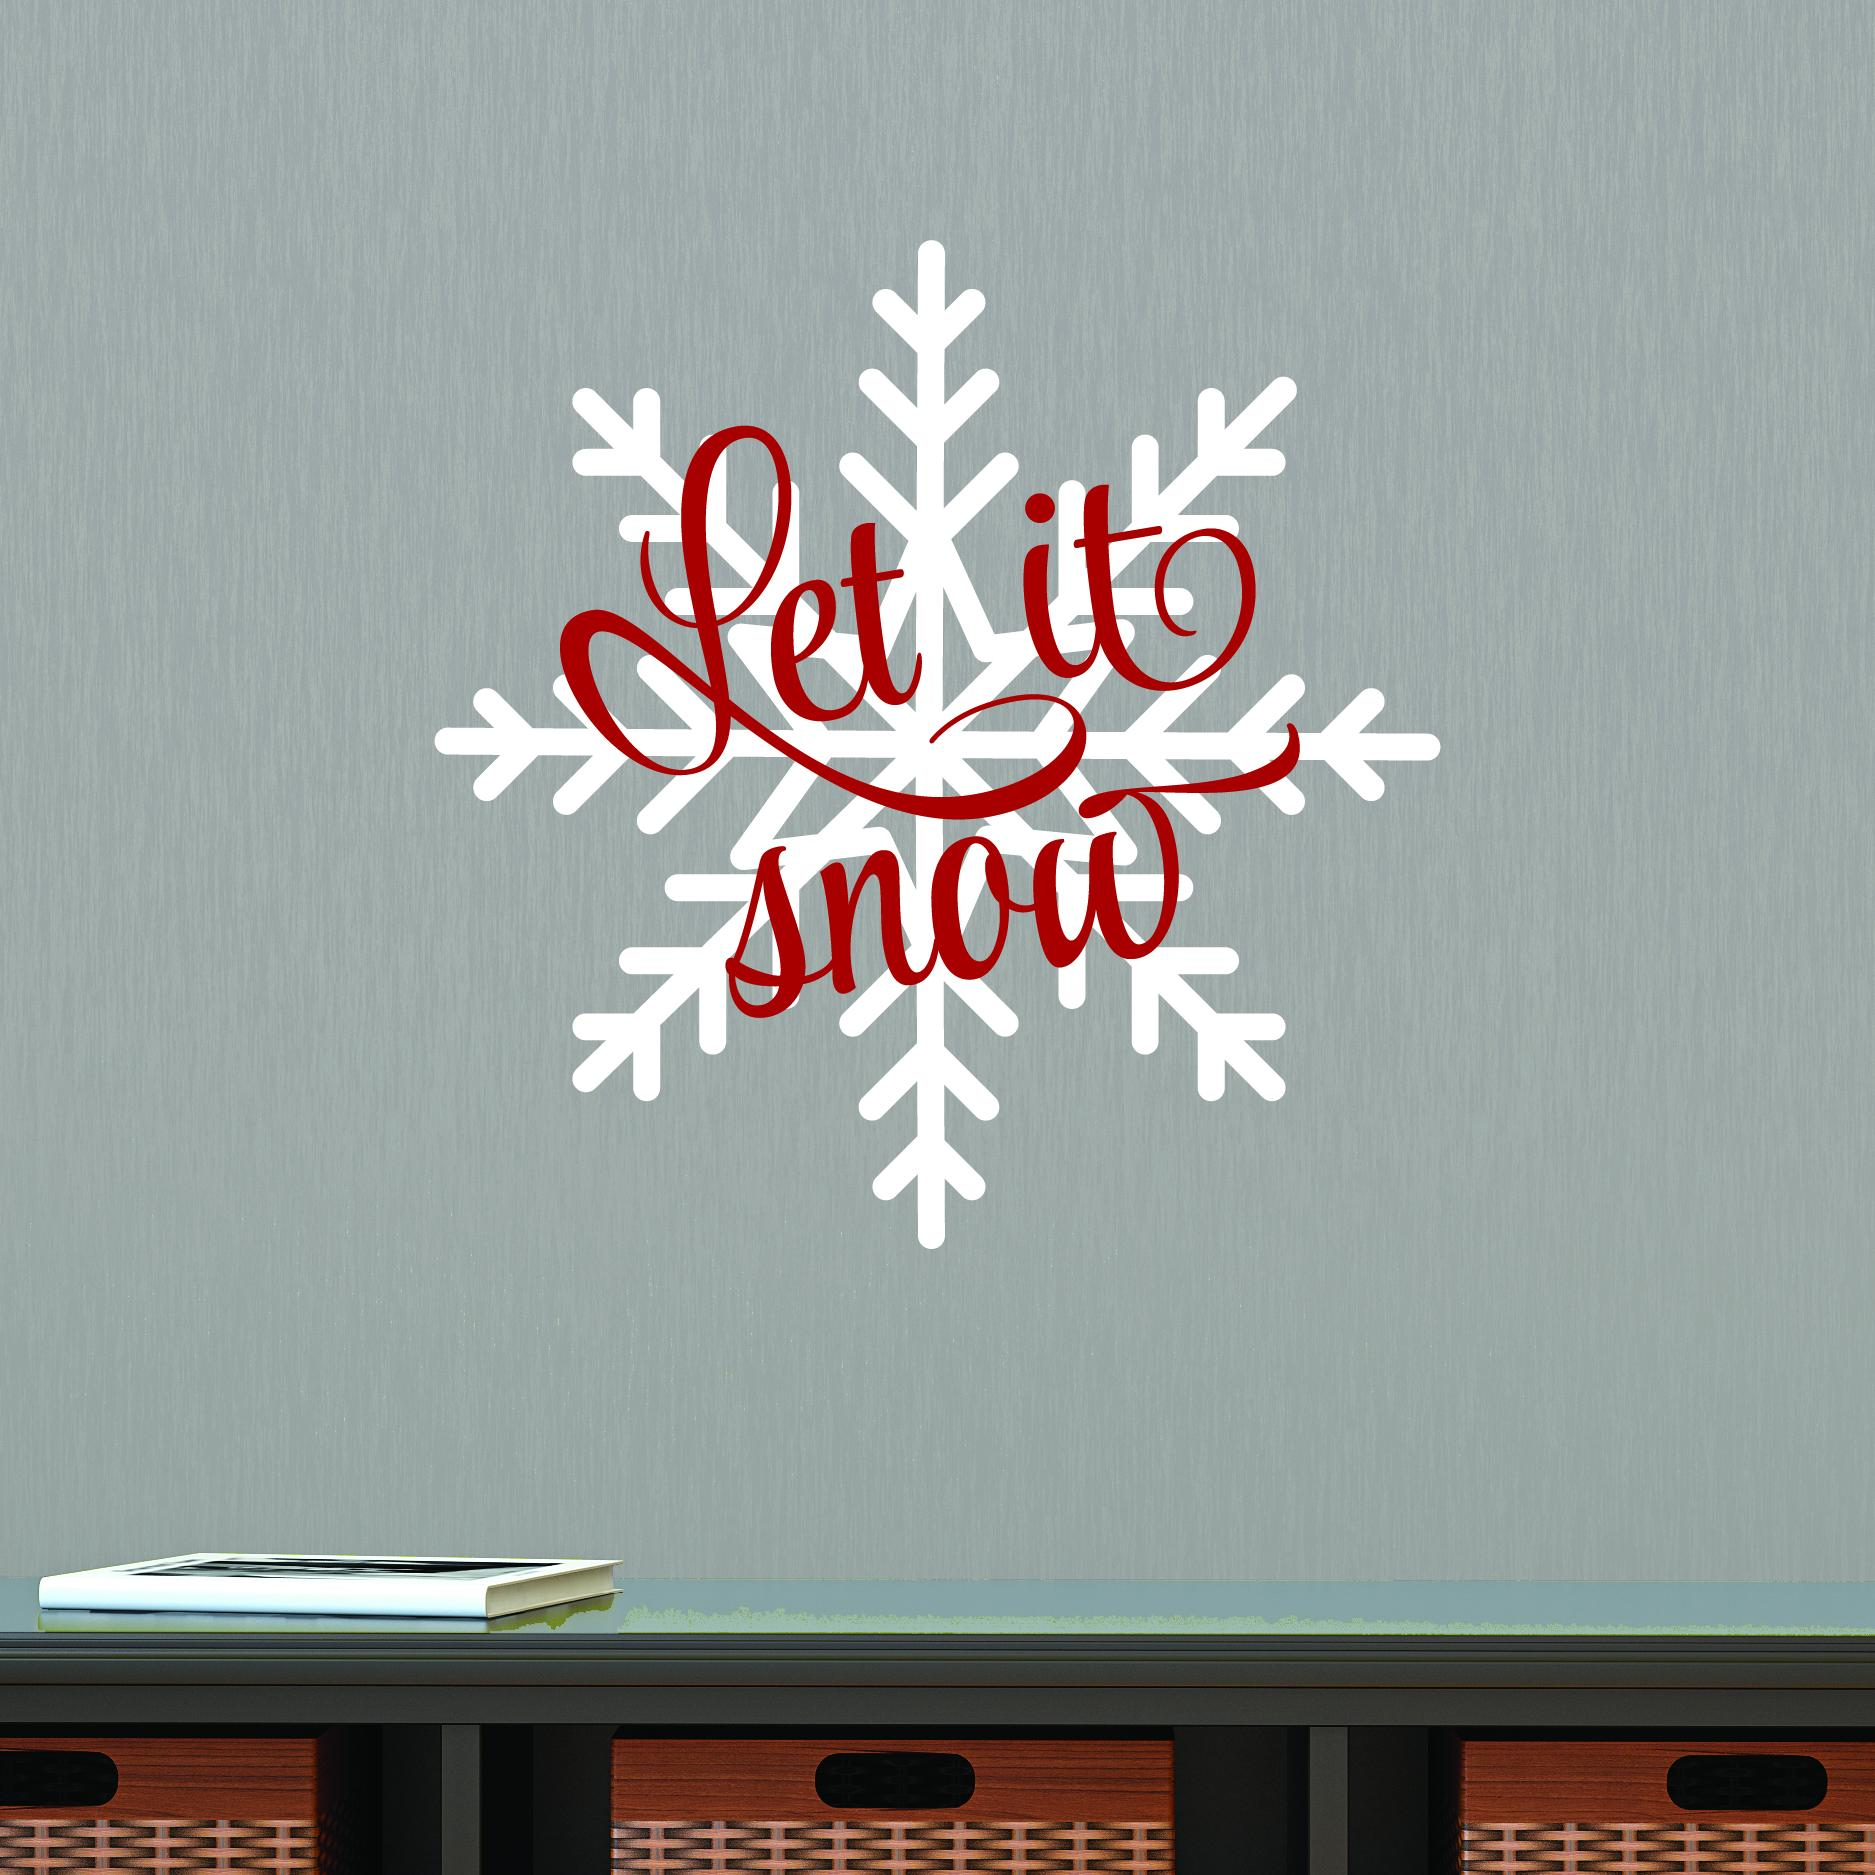 let it snow snowflake wall quotes u2122 decal